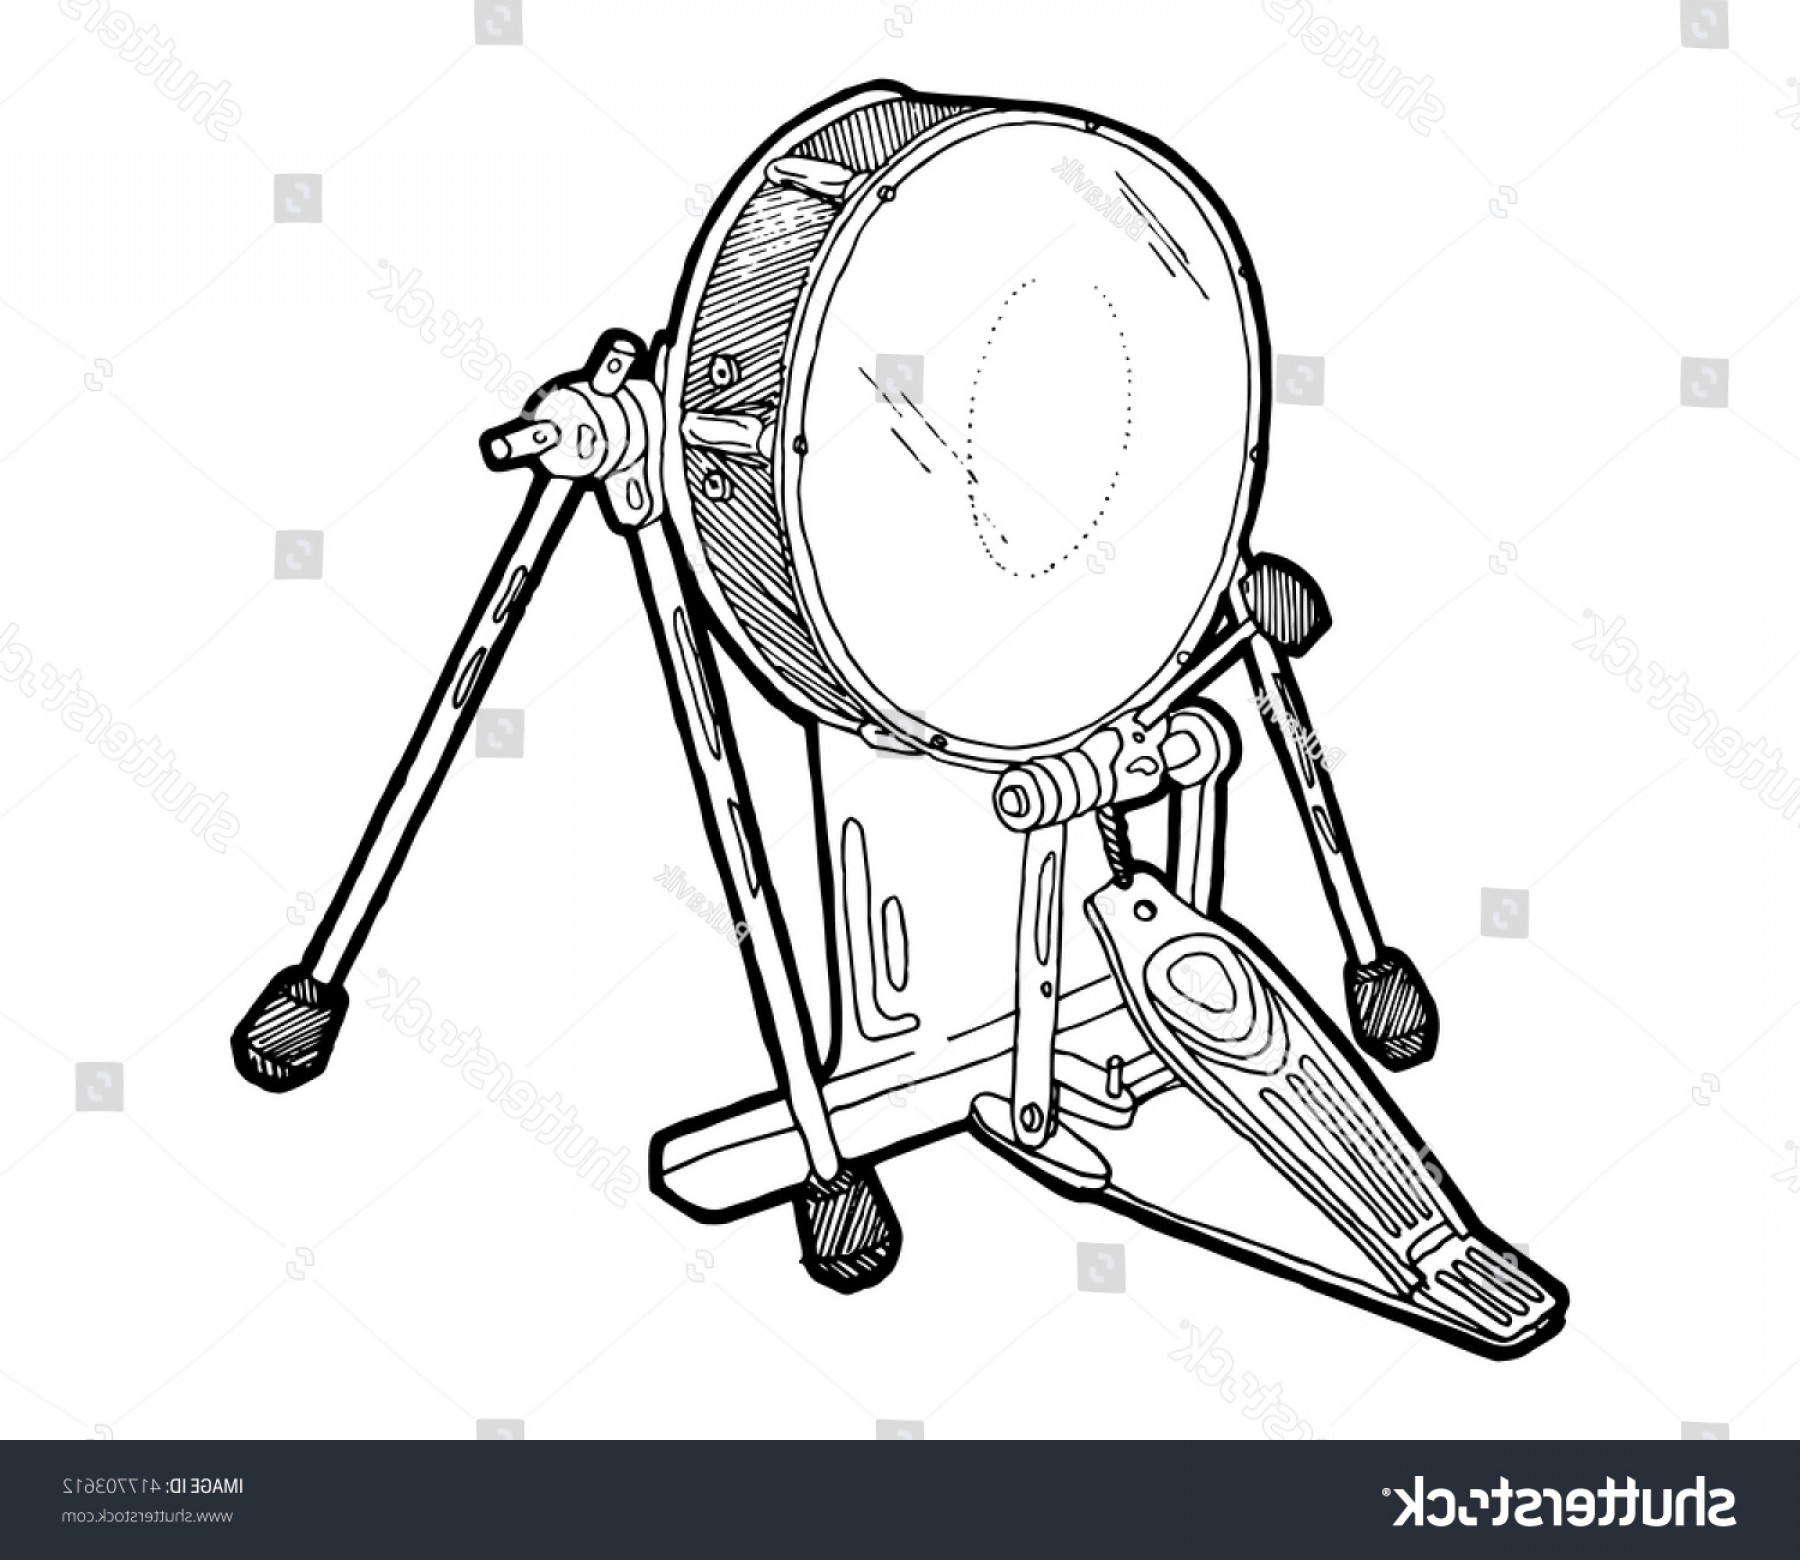 Vector Bass Drum Pedal: Bass Drum Pedal Sketch Drawing Isolated